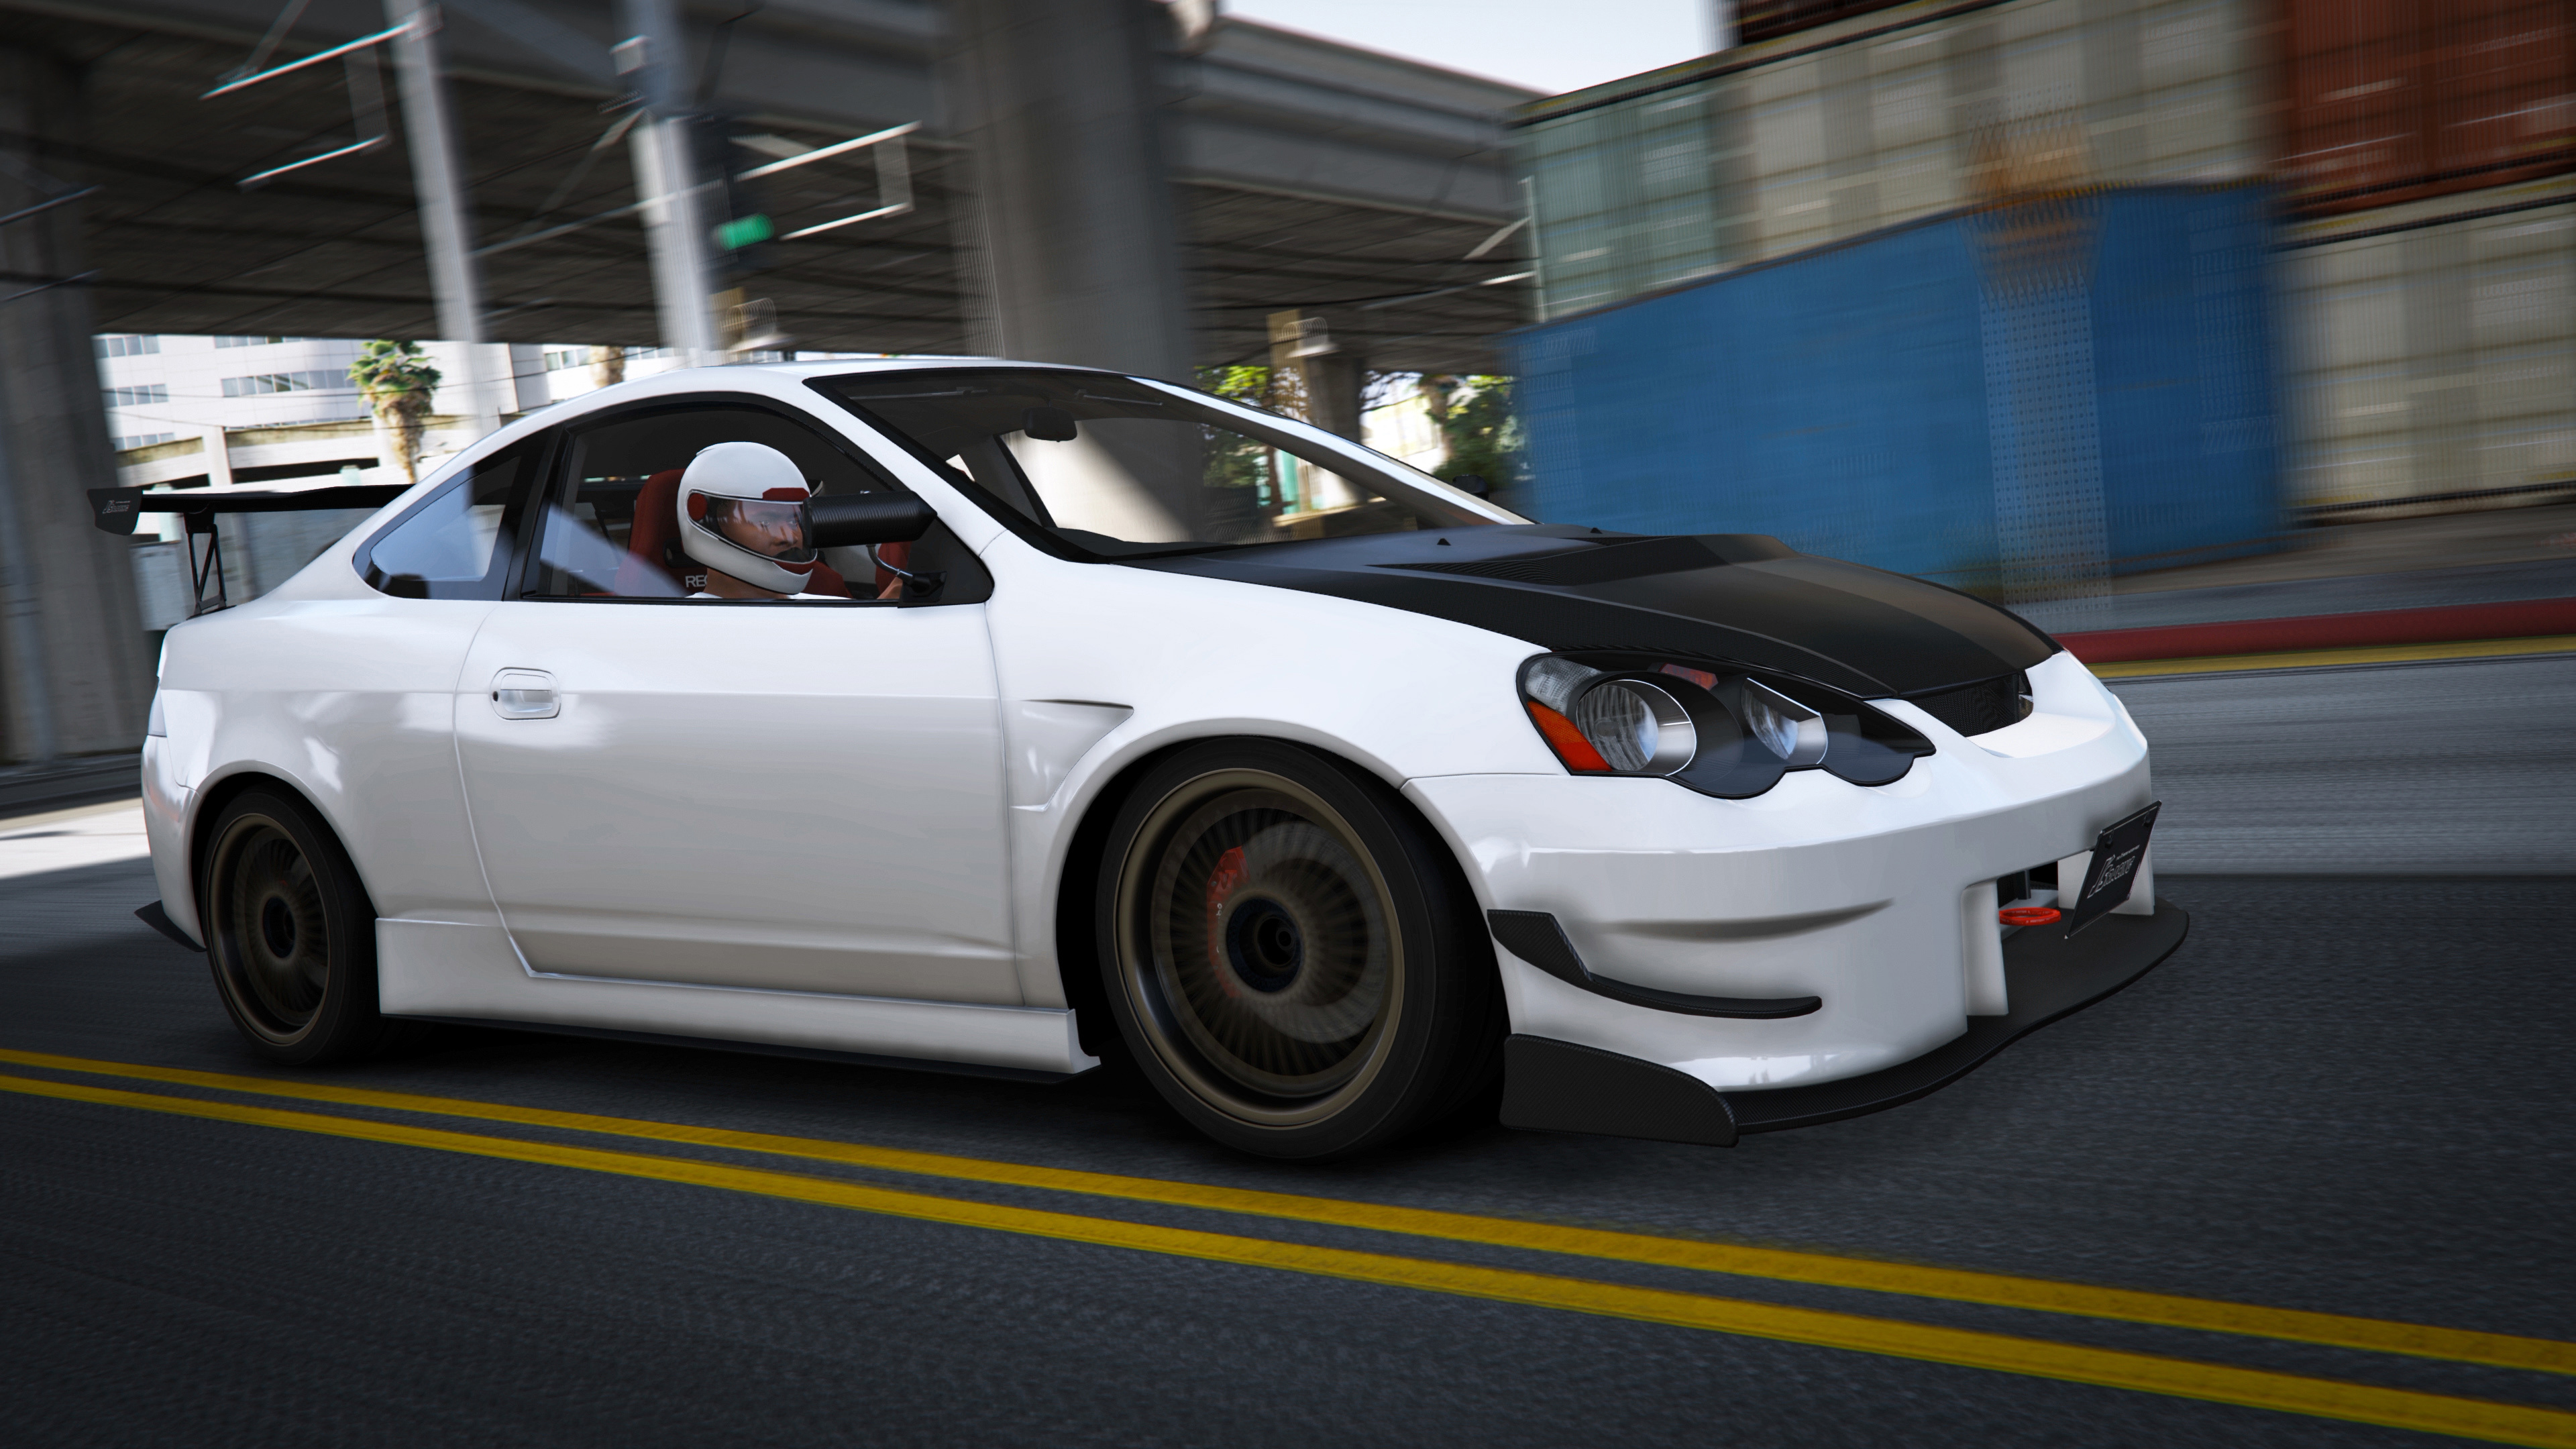 Honda Integra Type R Dc5 Js Racingmugenings1 Add On Gta5